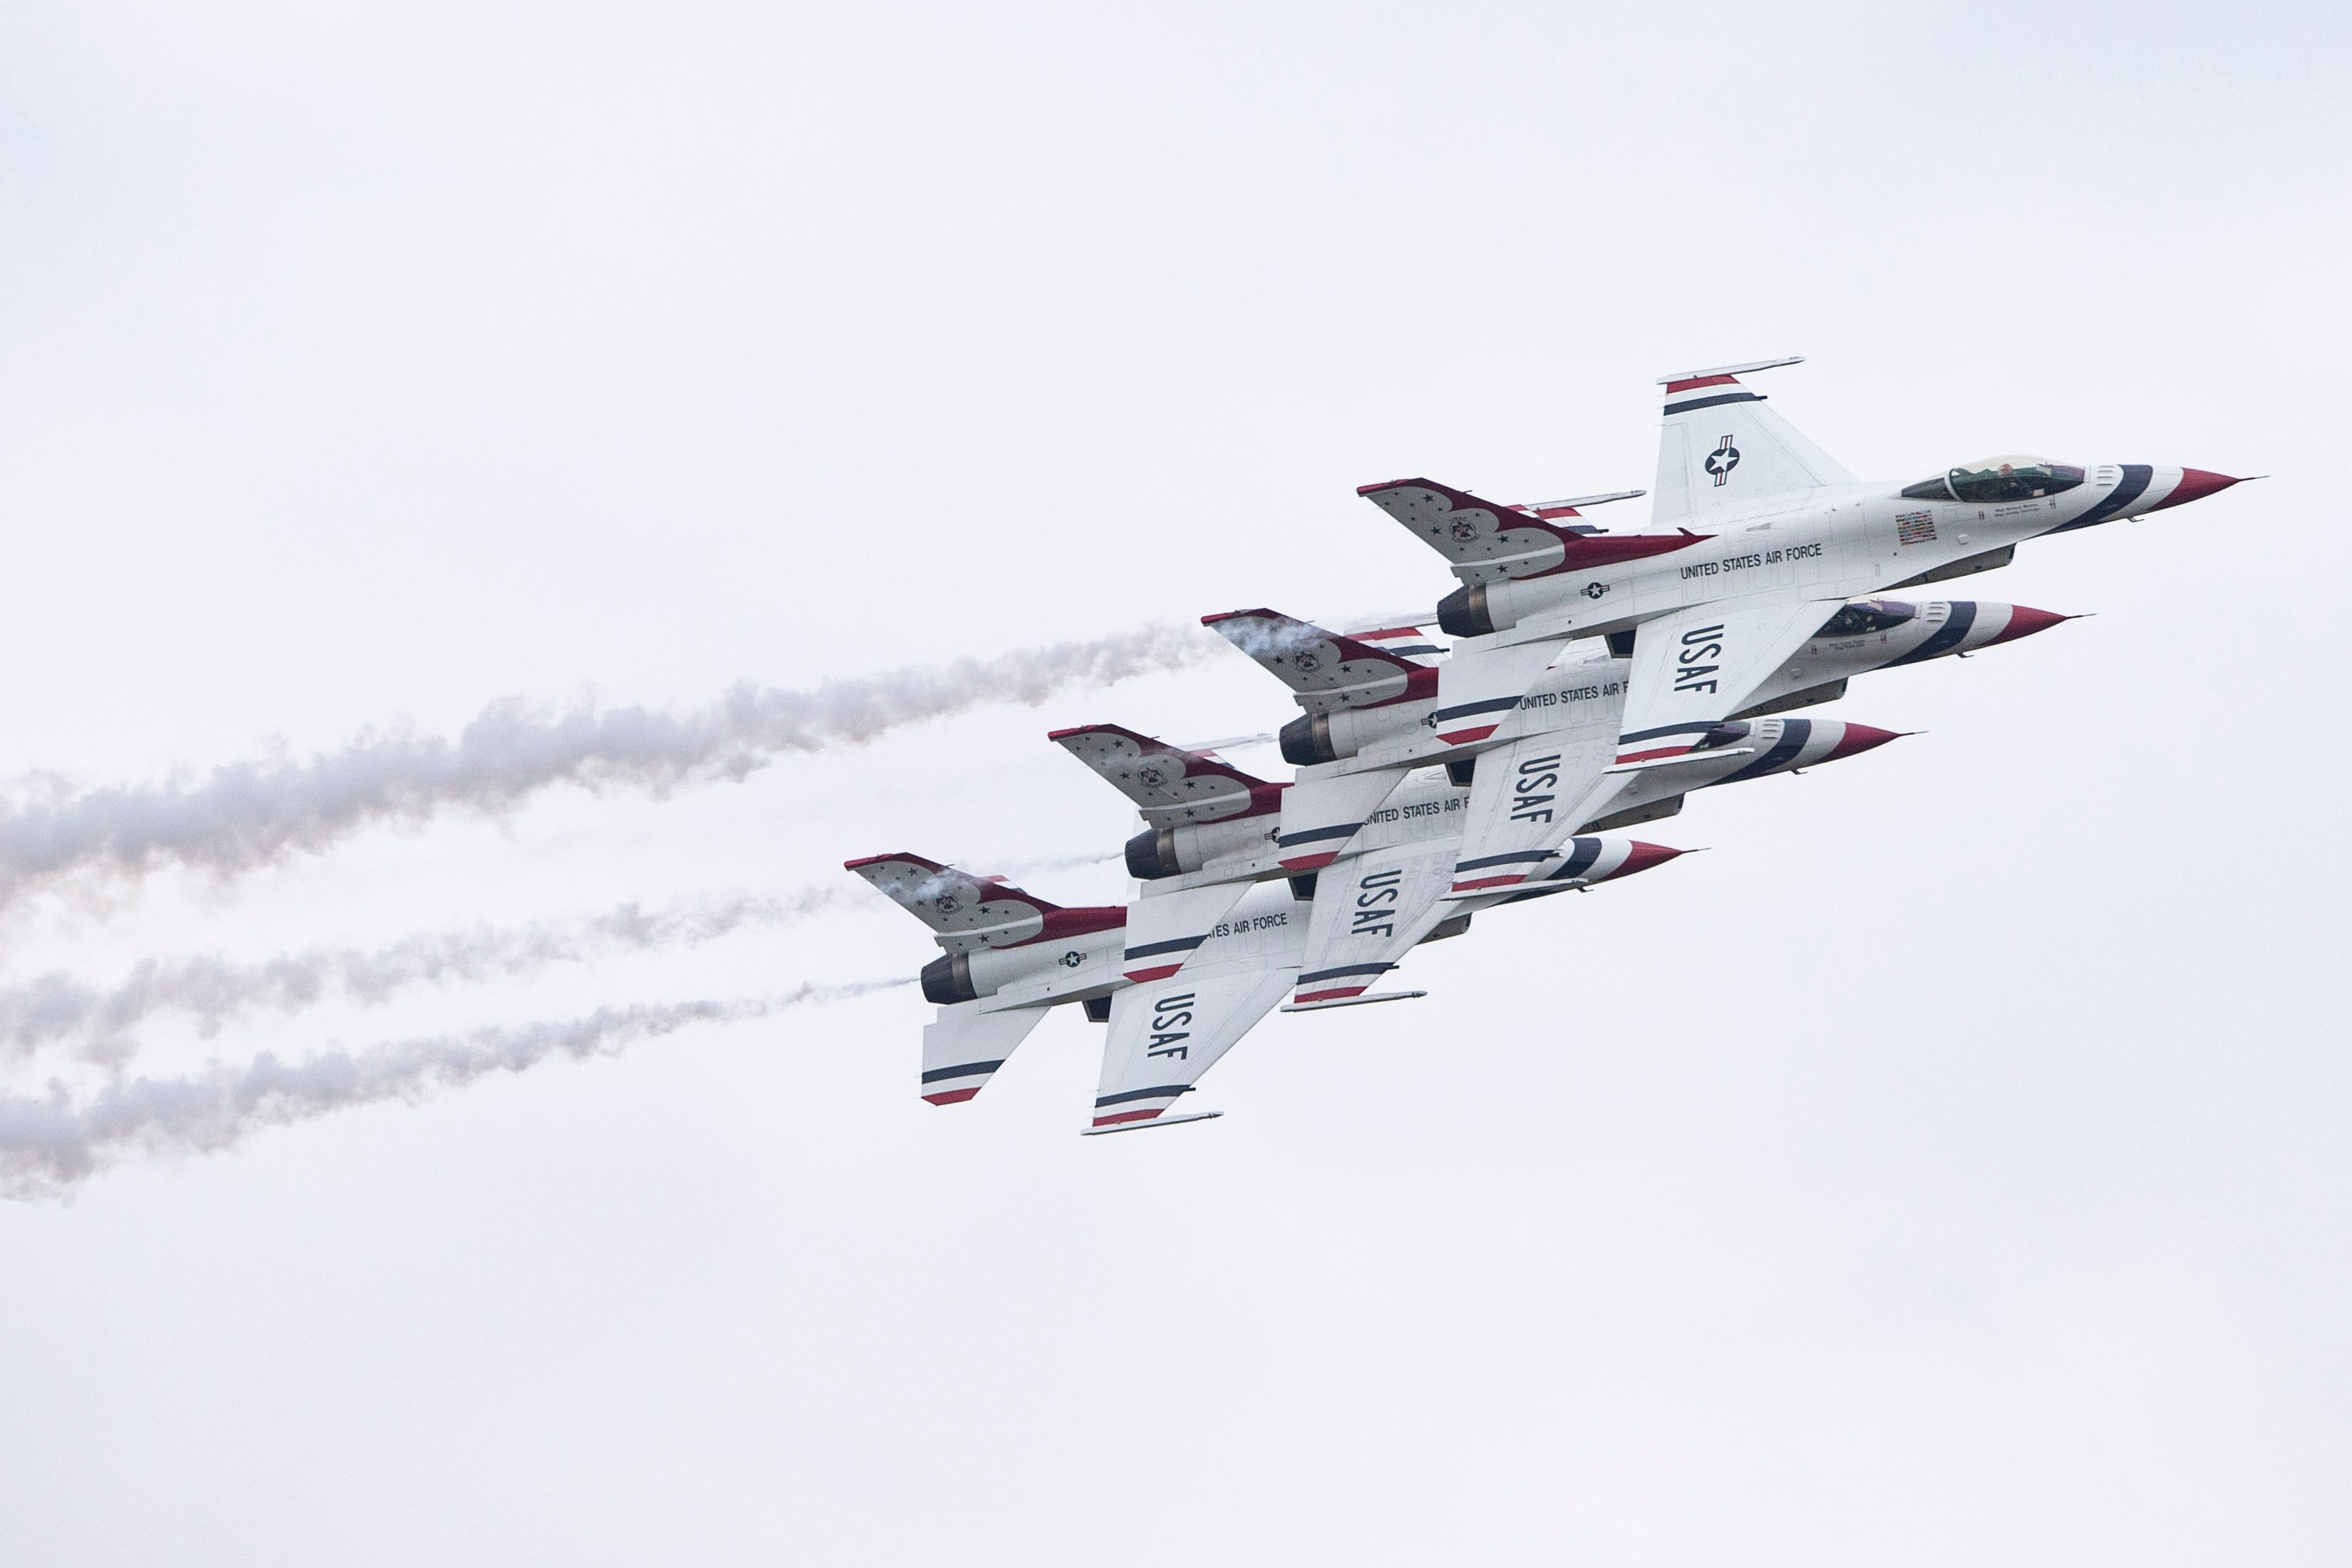 US Air Force Thunderbirds to headline 2021 Great Tennessee Air Show